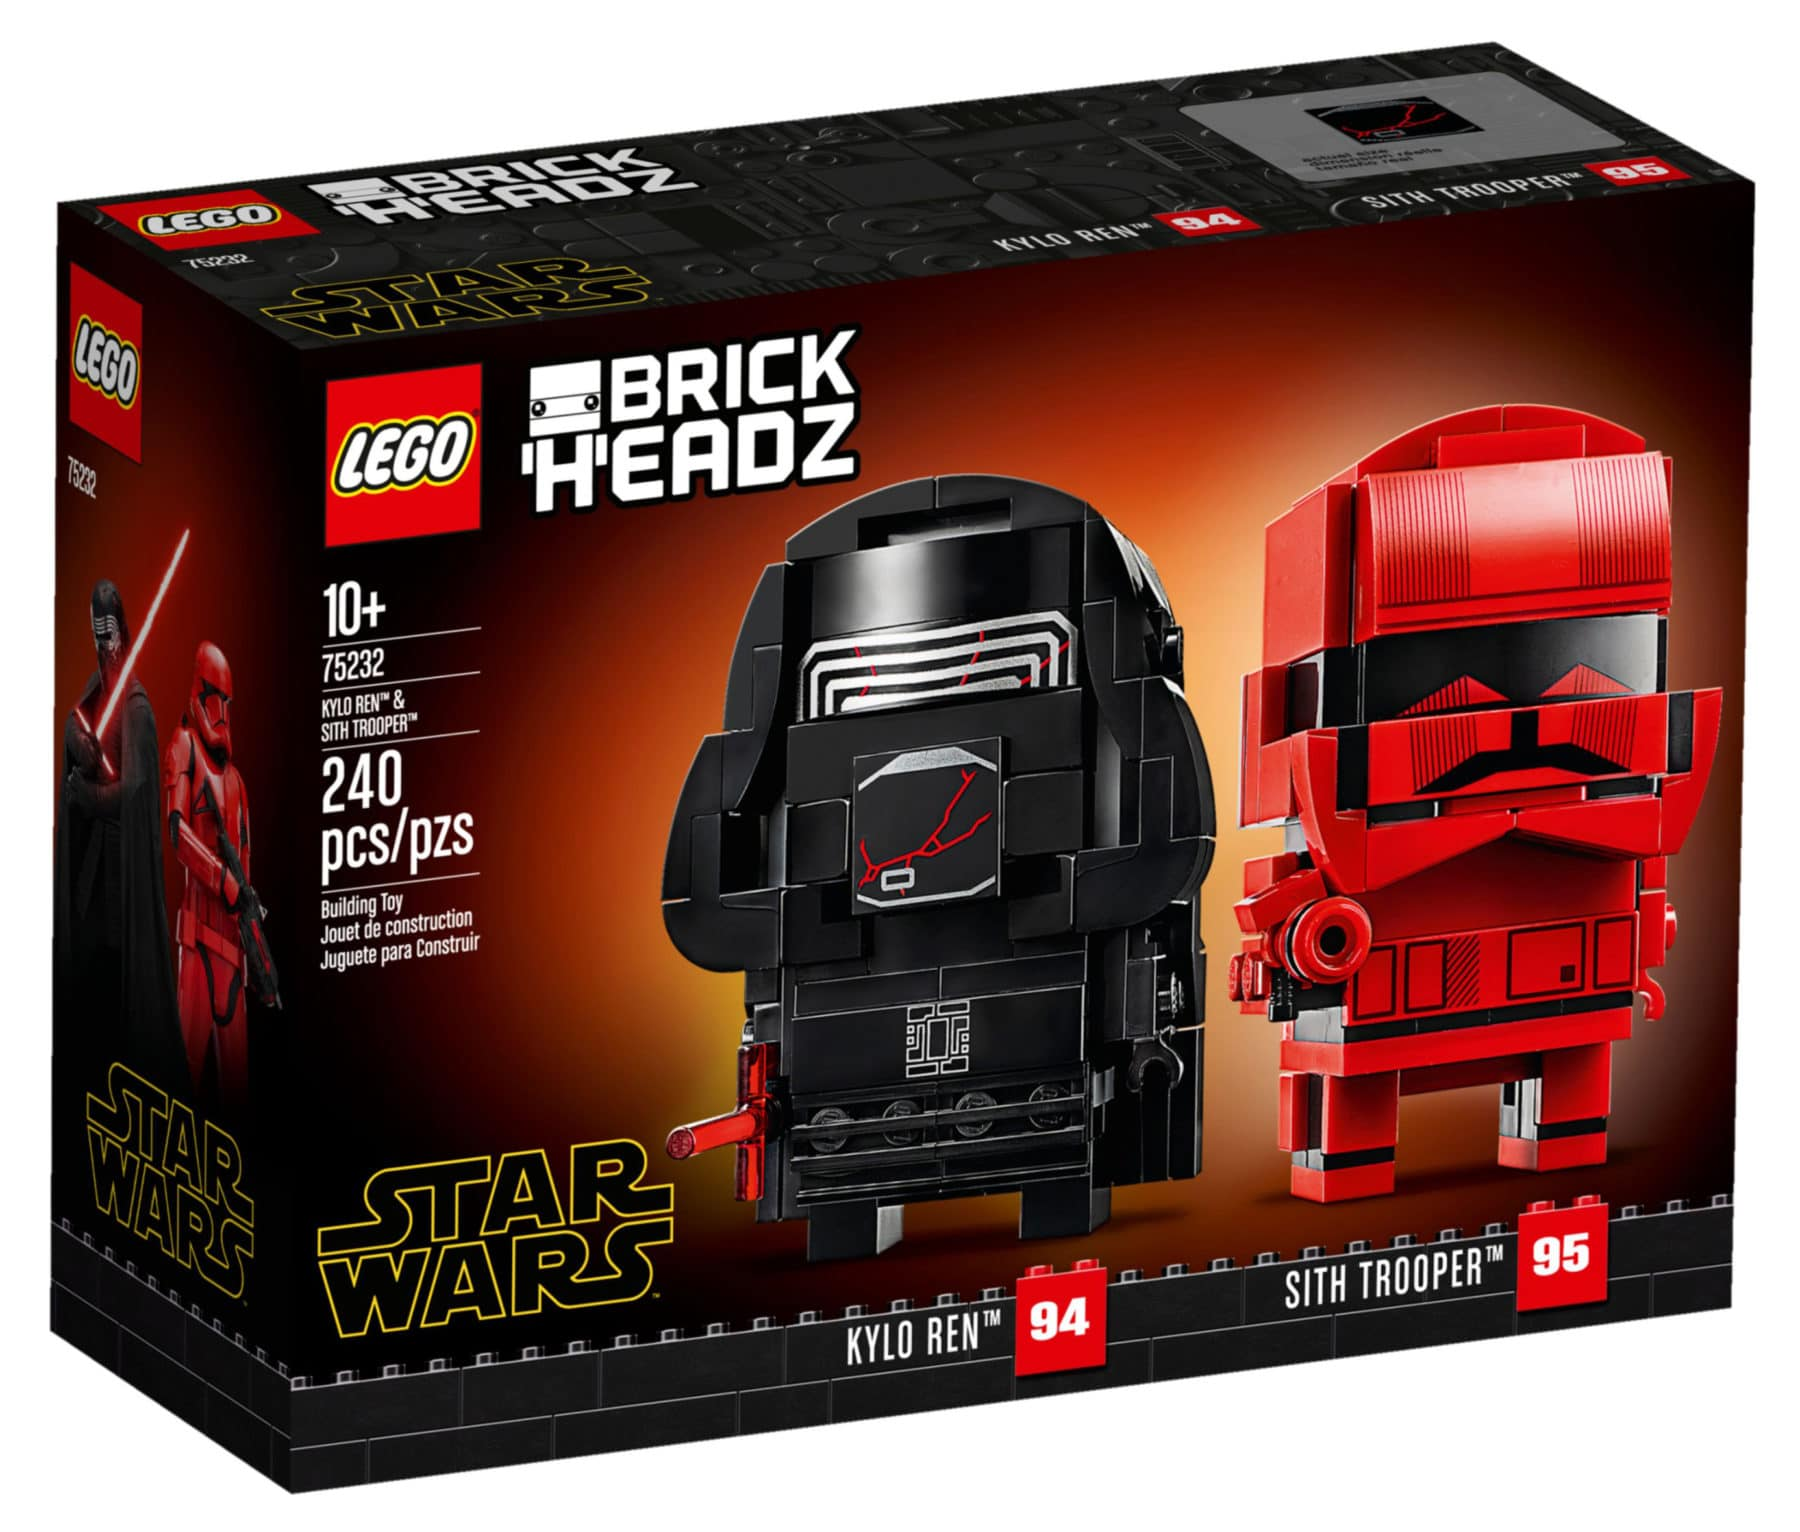 LEGO Star Wars 75232 Kylo Ren und Sith Trooper BrickHeadz